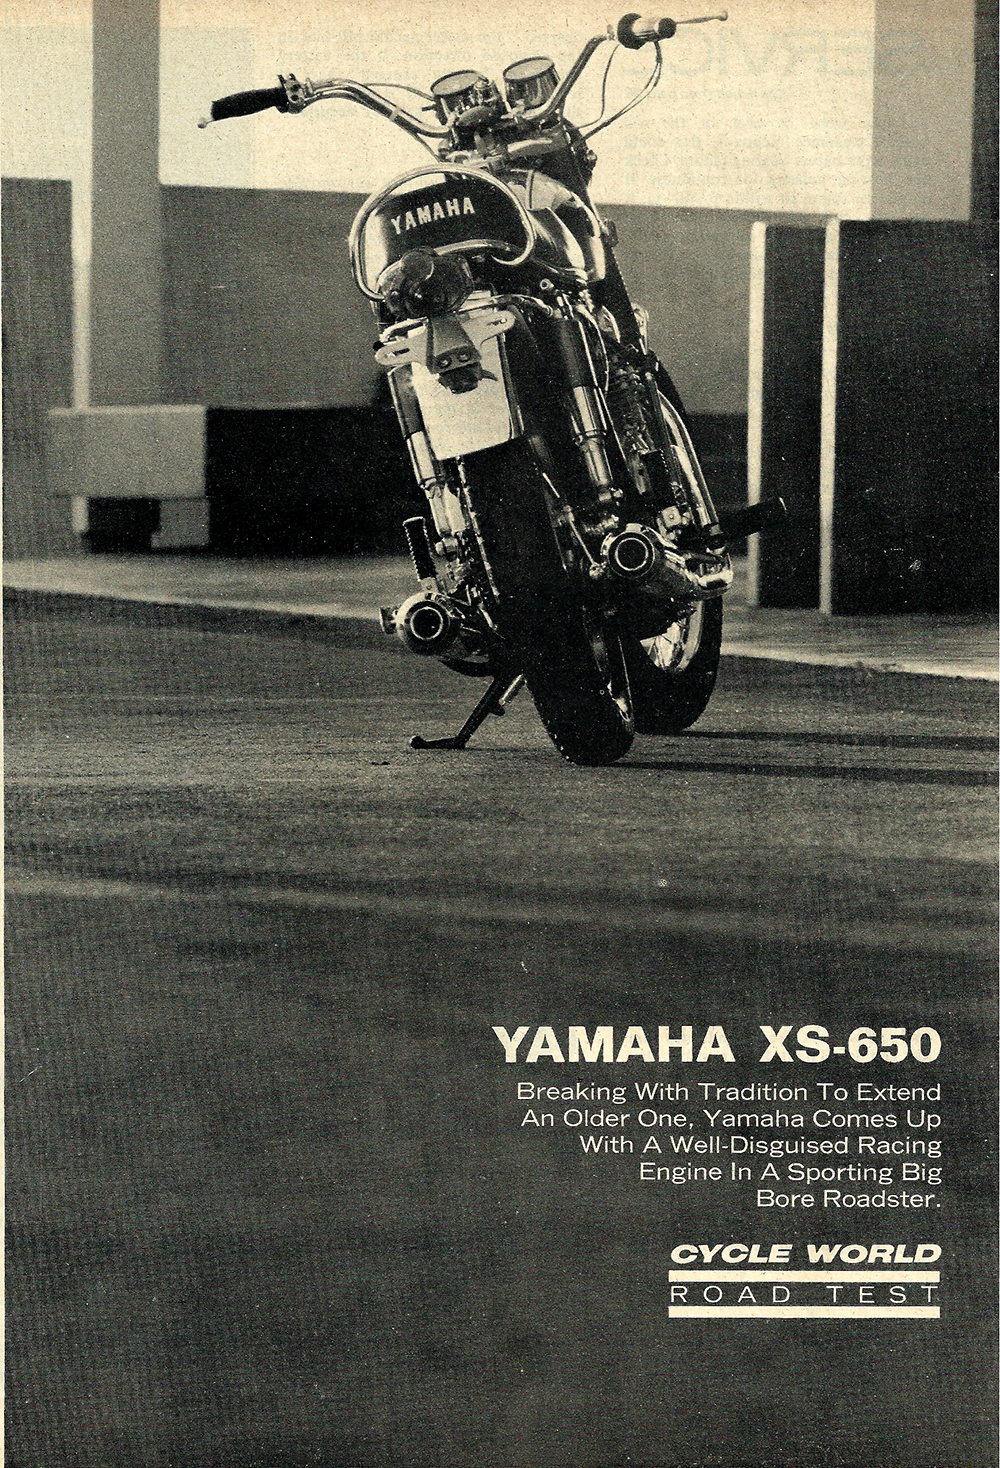 1970 Yamaha XS650 road test 1.jpg